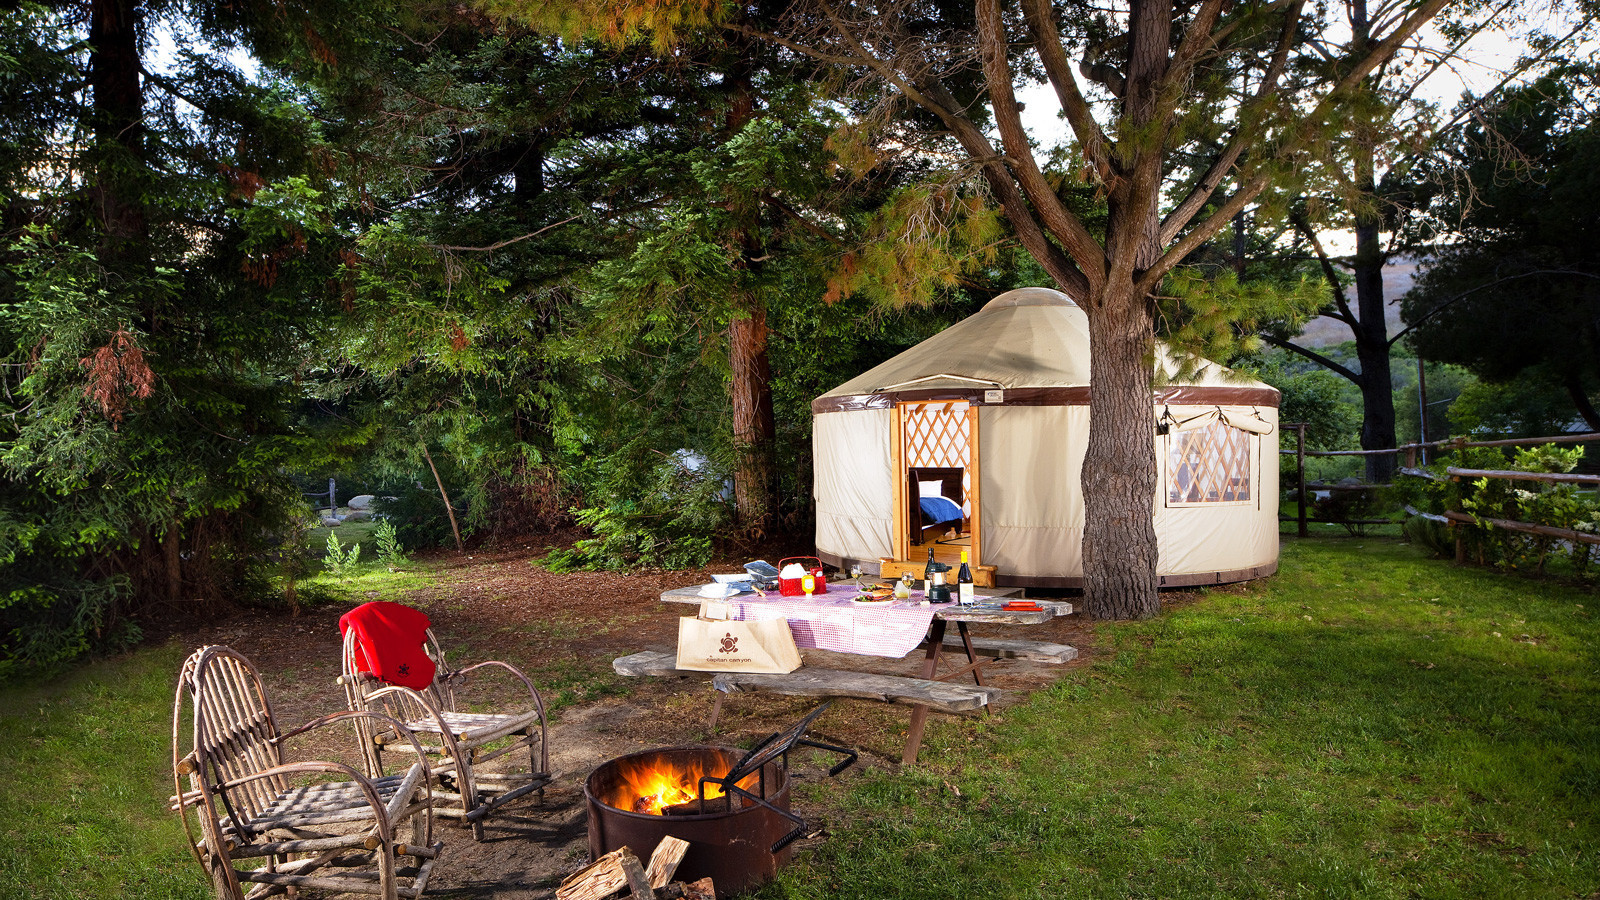 8 great campgrounds in california - los angeles times